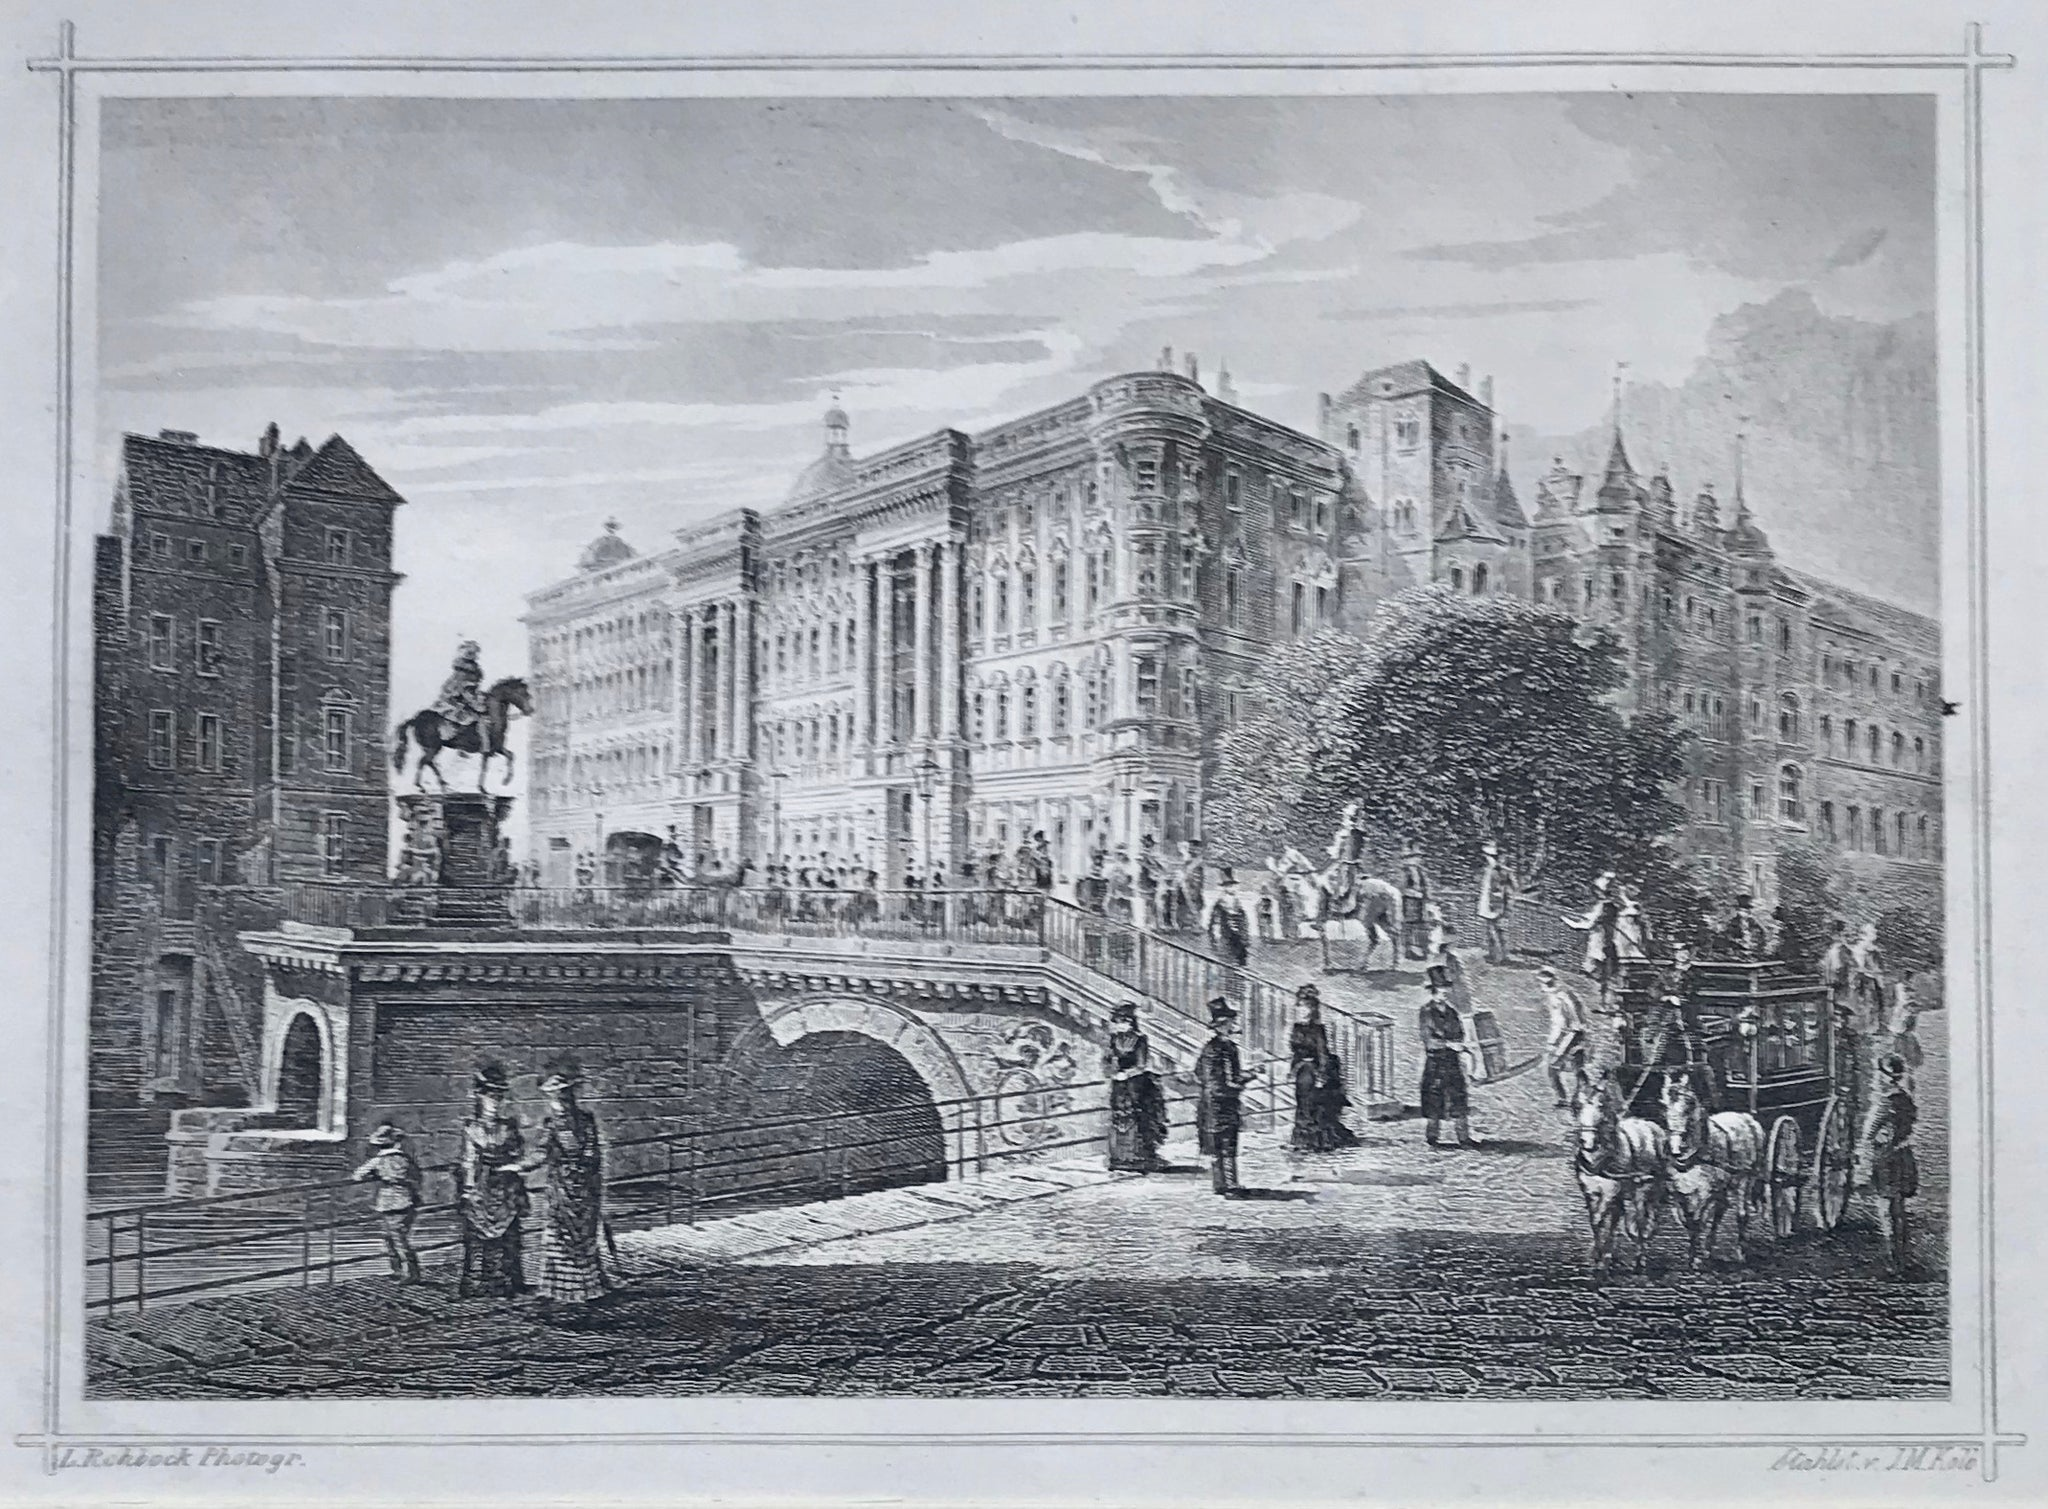 """Das Koenigl. Schloss in Berlin""  Steel engraving by J.M. Kolb after a photograph by L. Rohbock ca 1875."